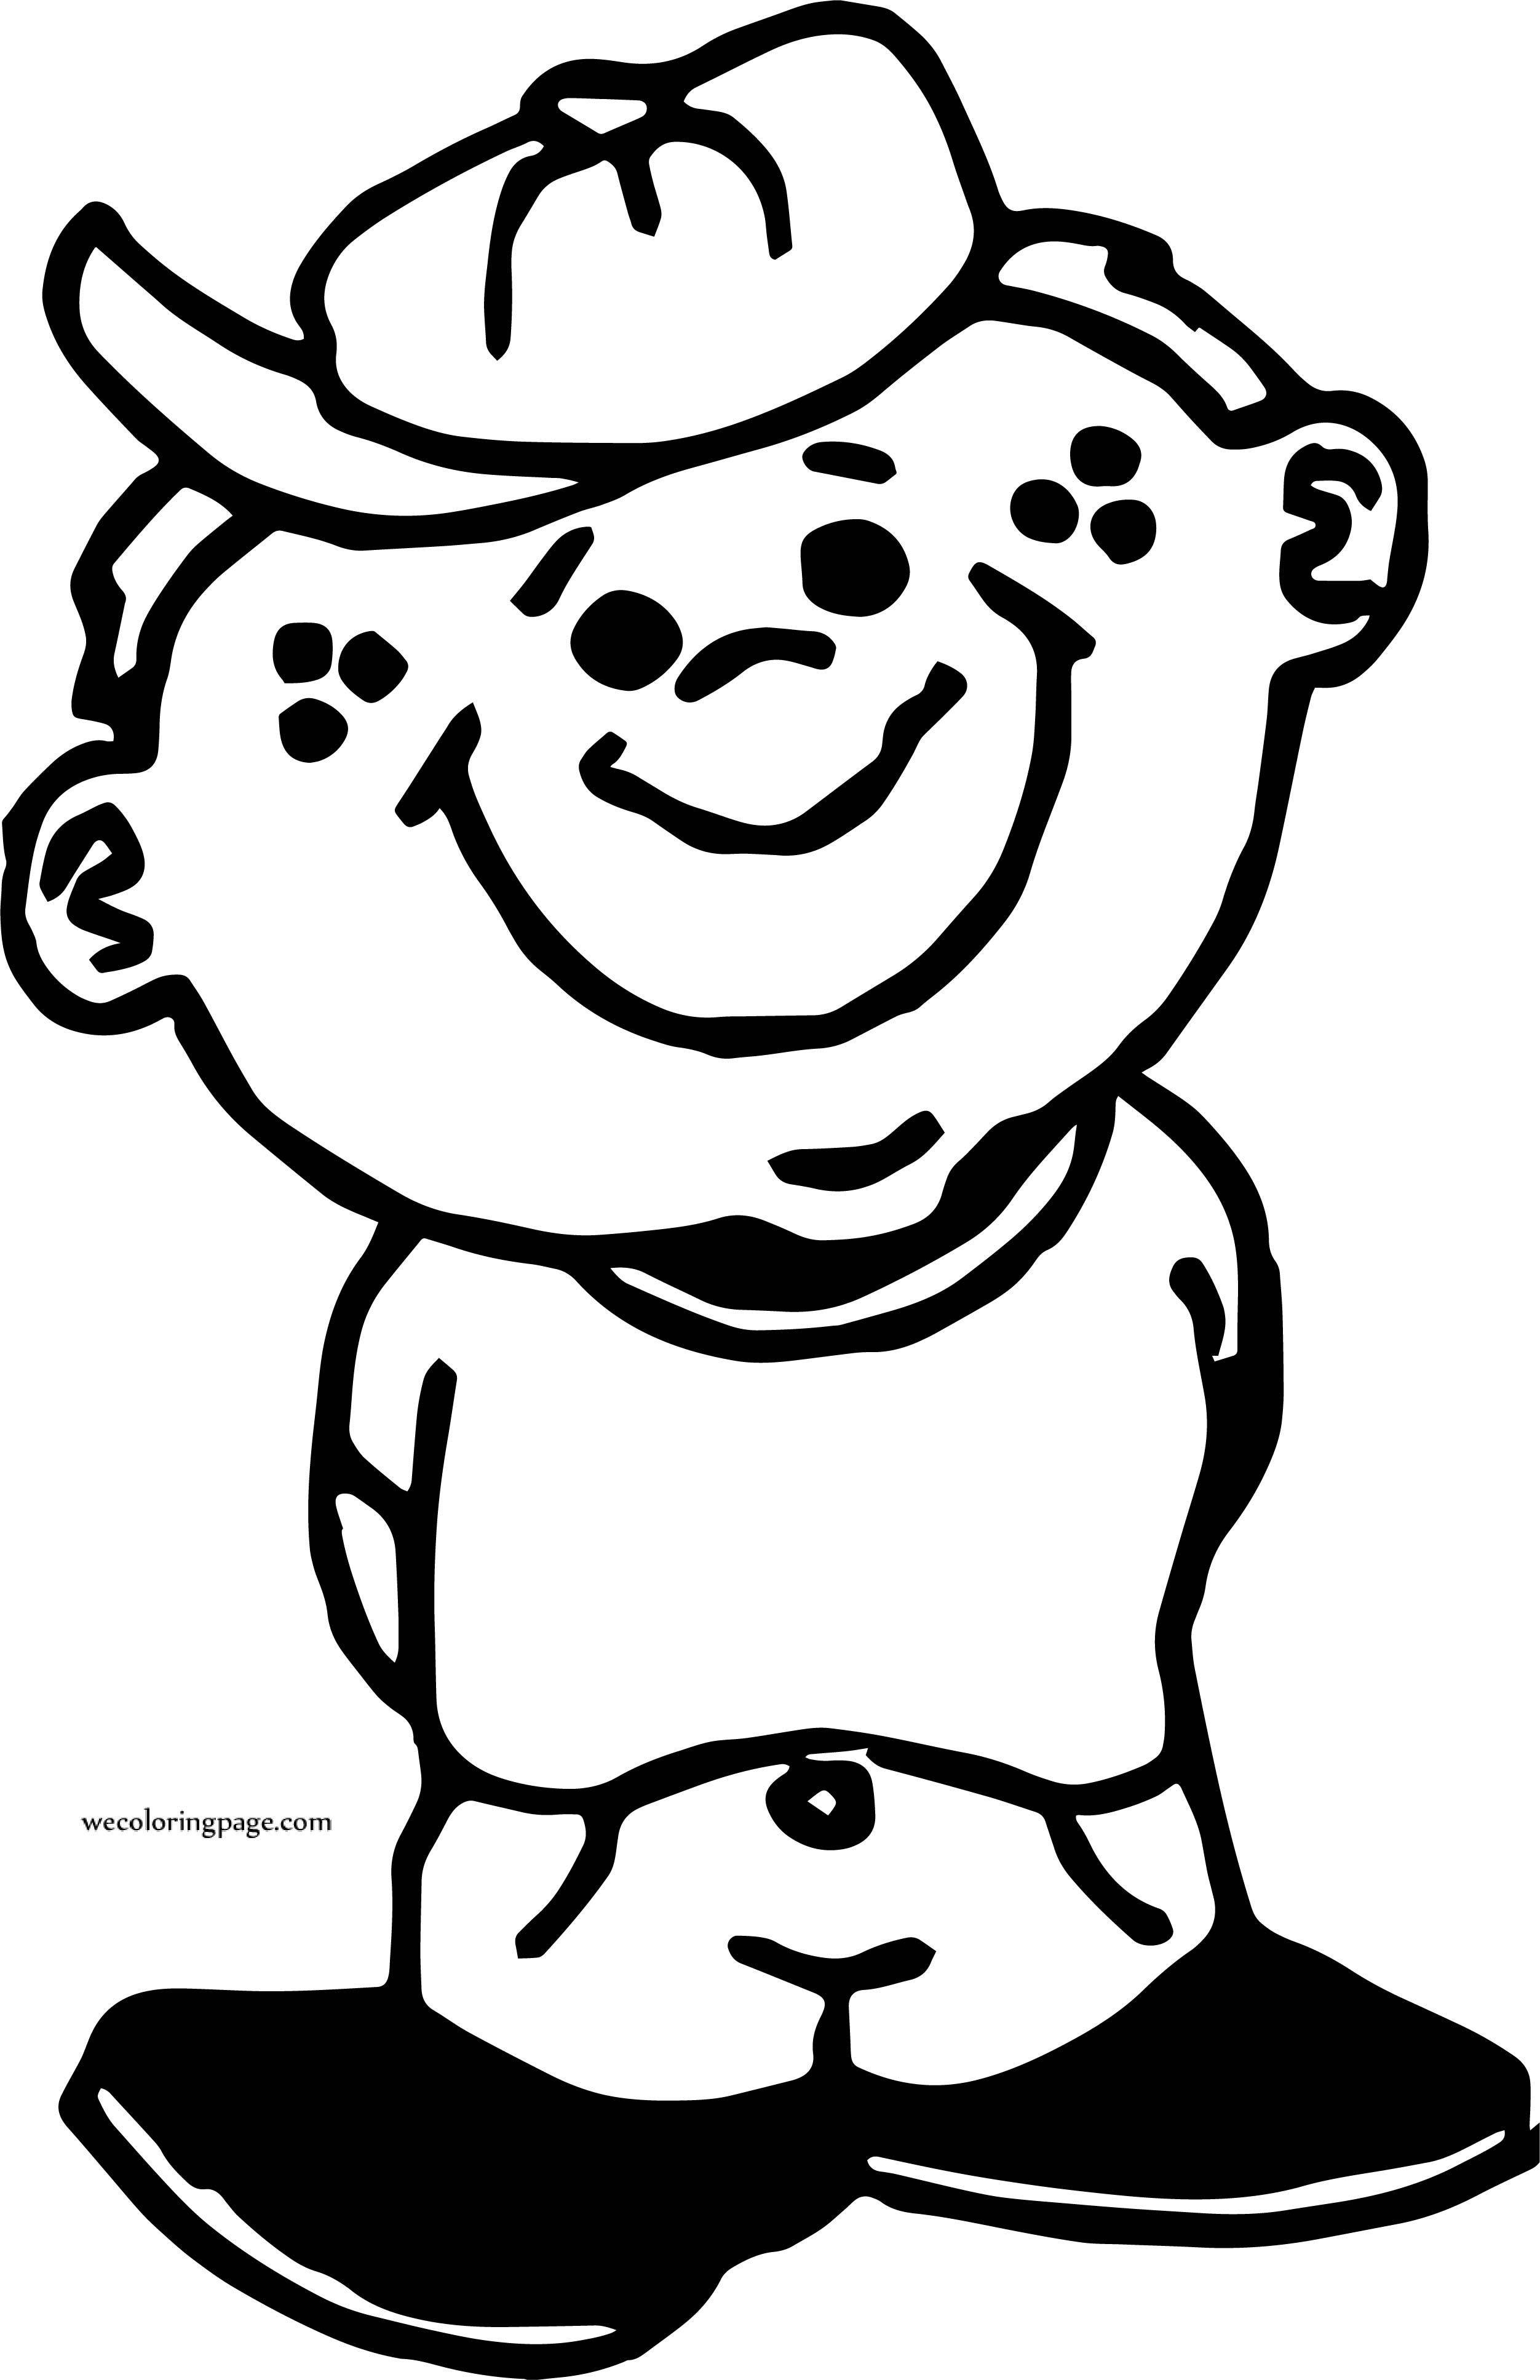 By Boy Coloring Page